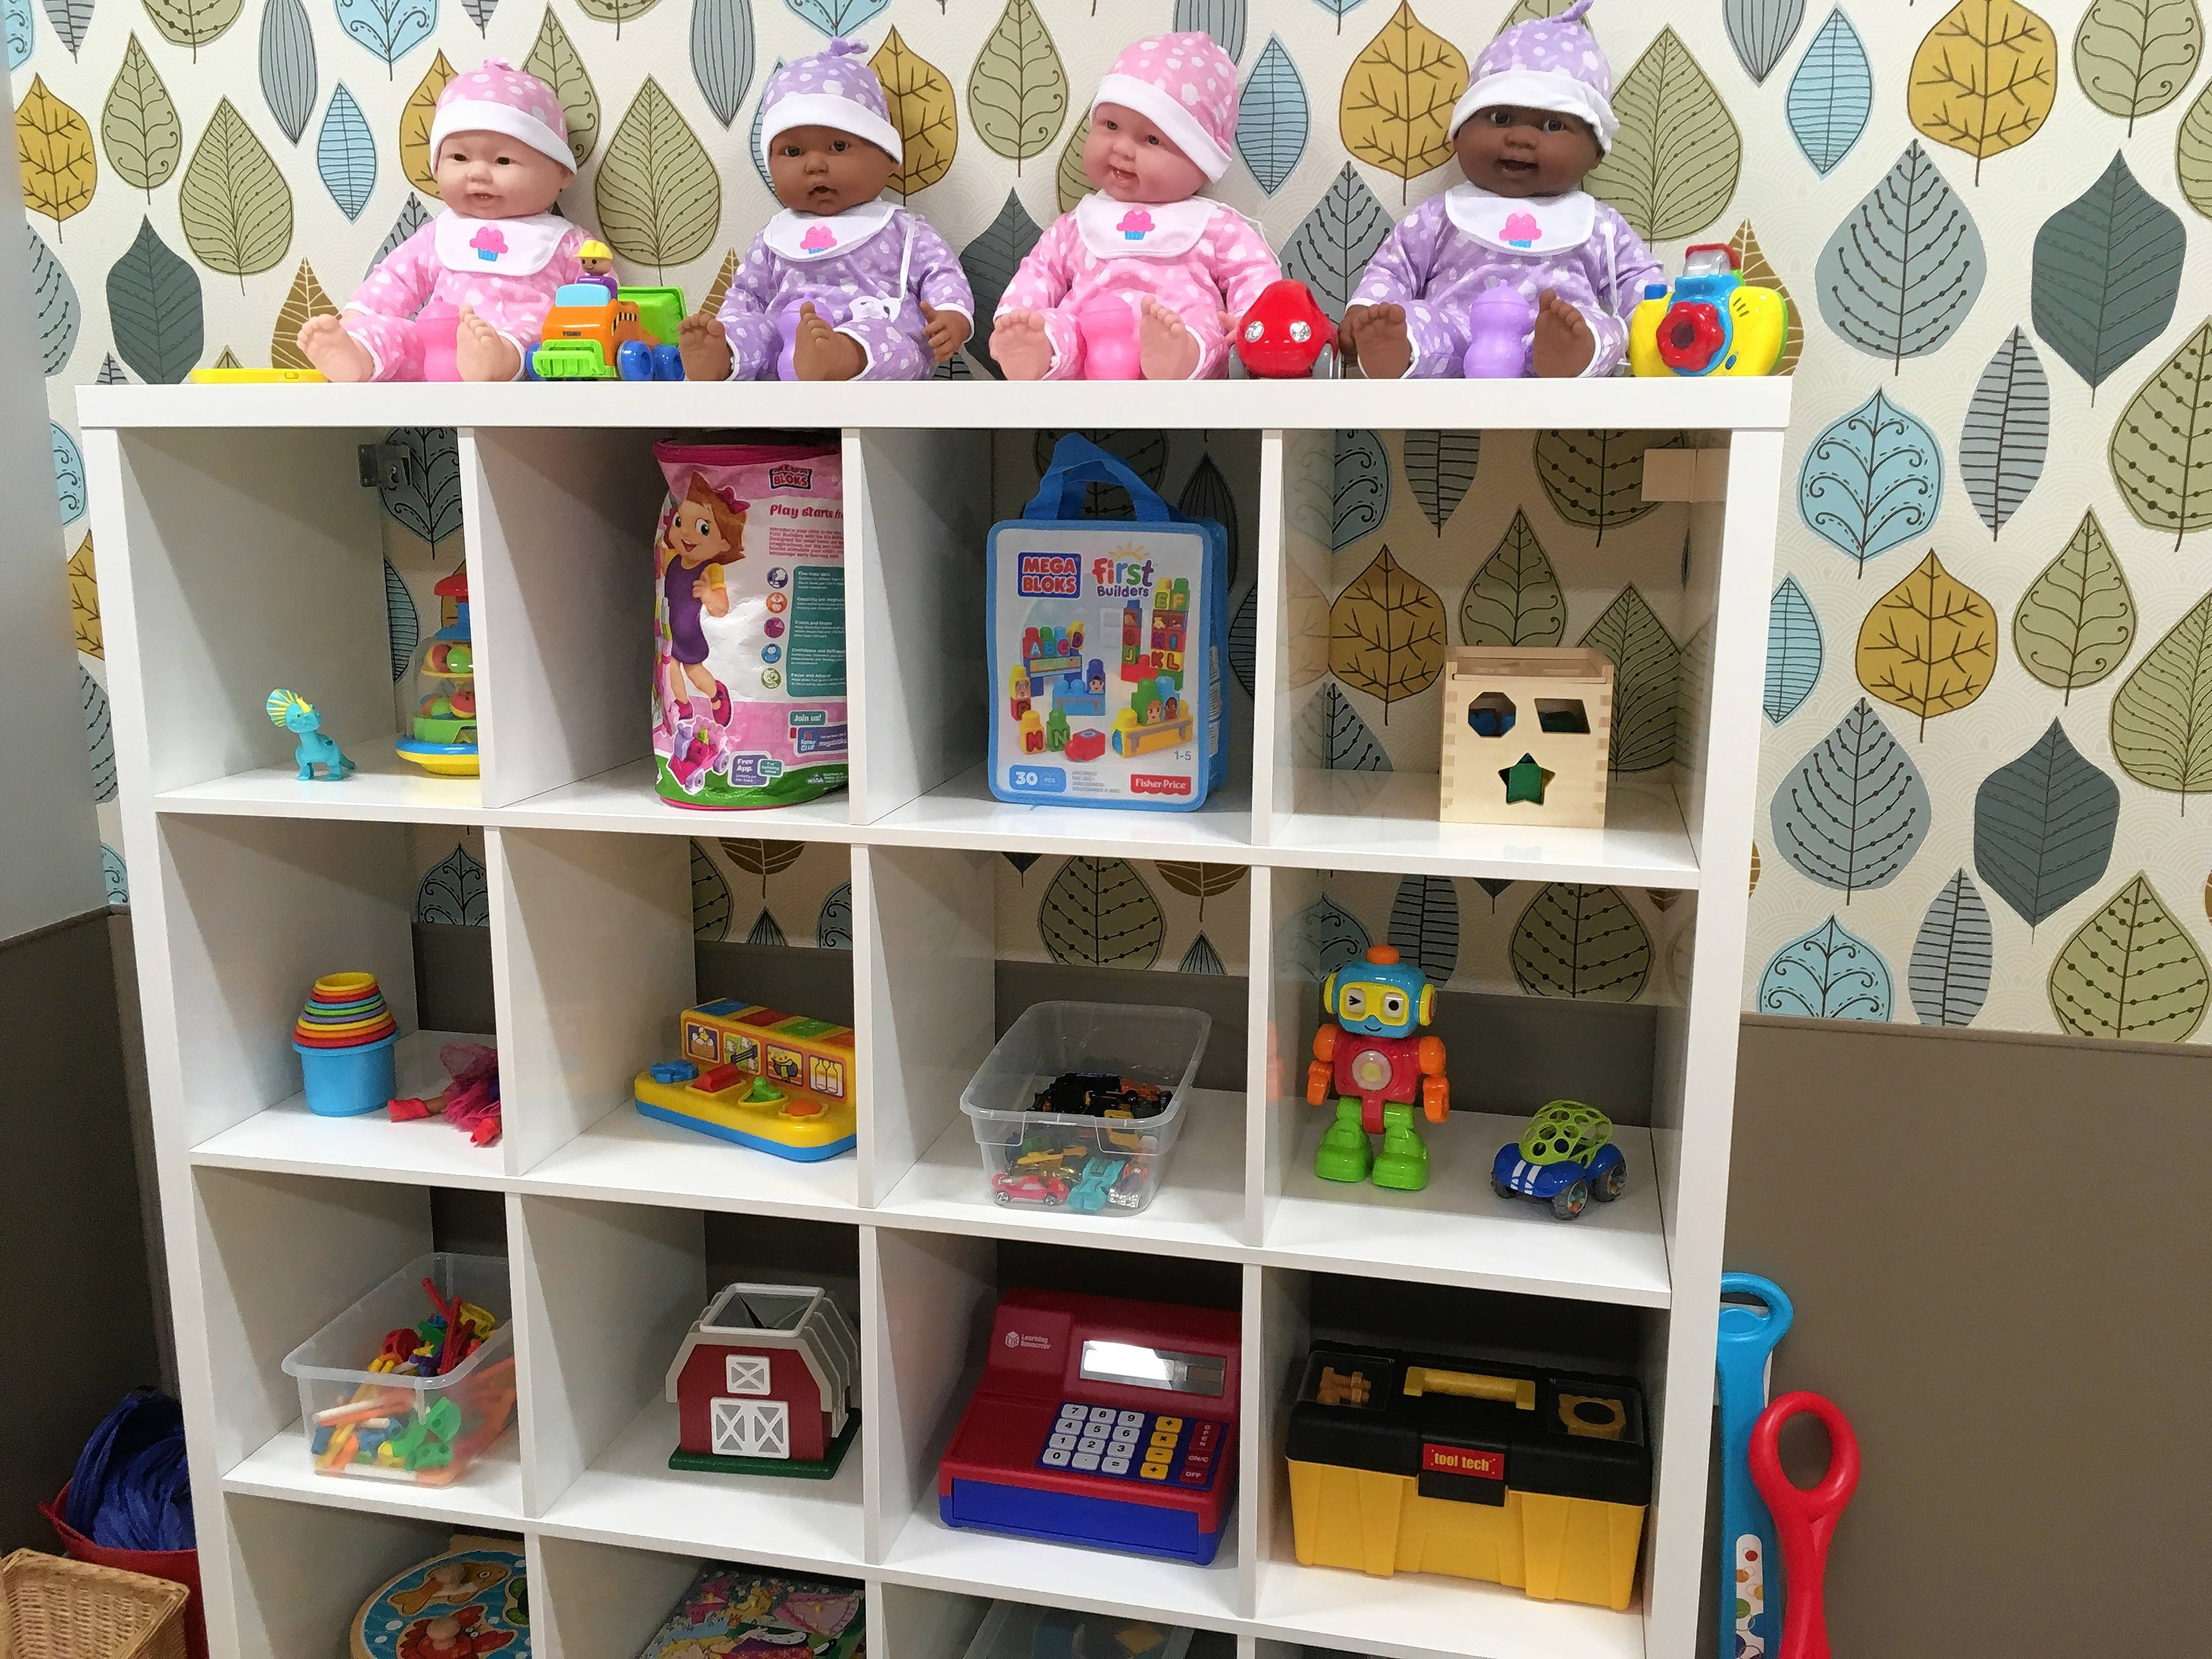 Neatly arranged toys await use at The Children's Room, a free day-care center that opens Tuesday for people who have business at the Rolling Meadows courthouse.